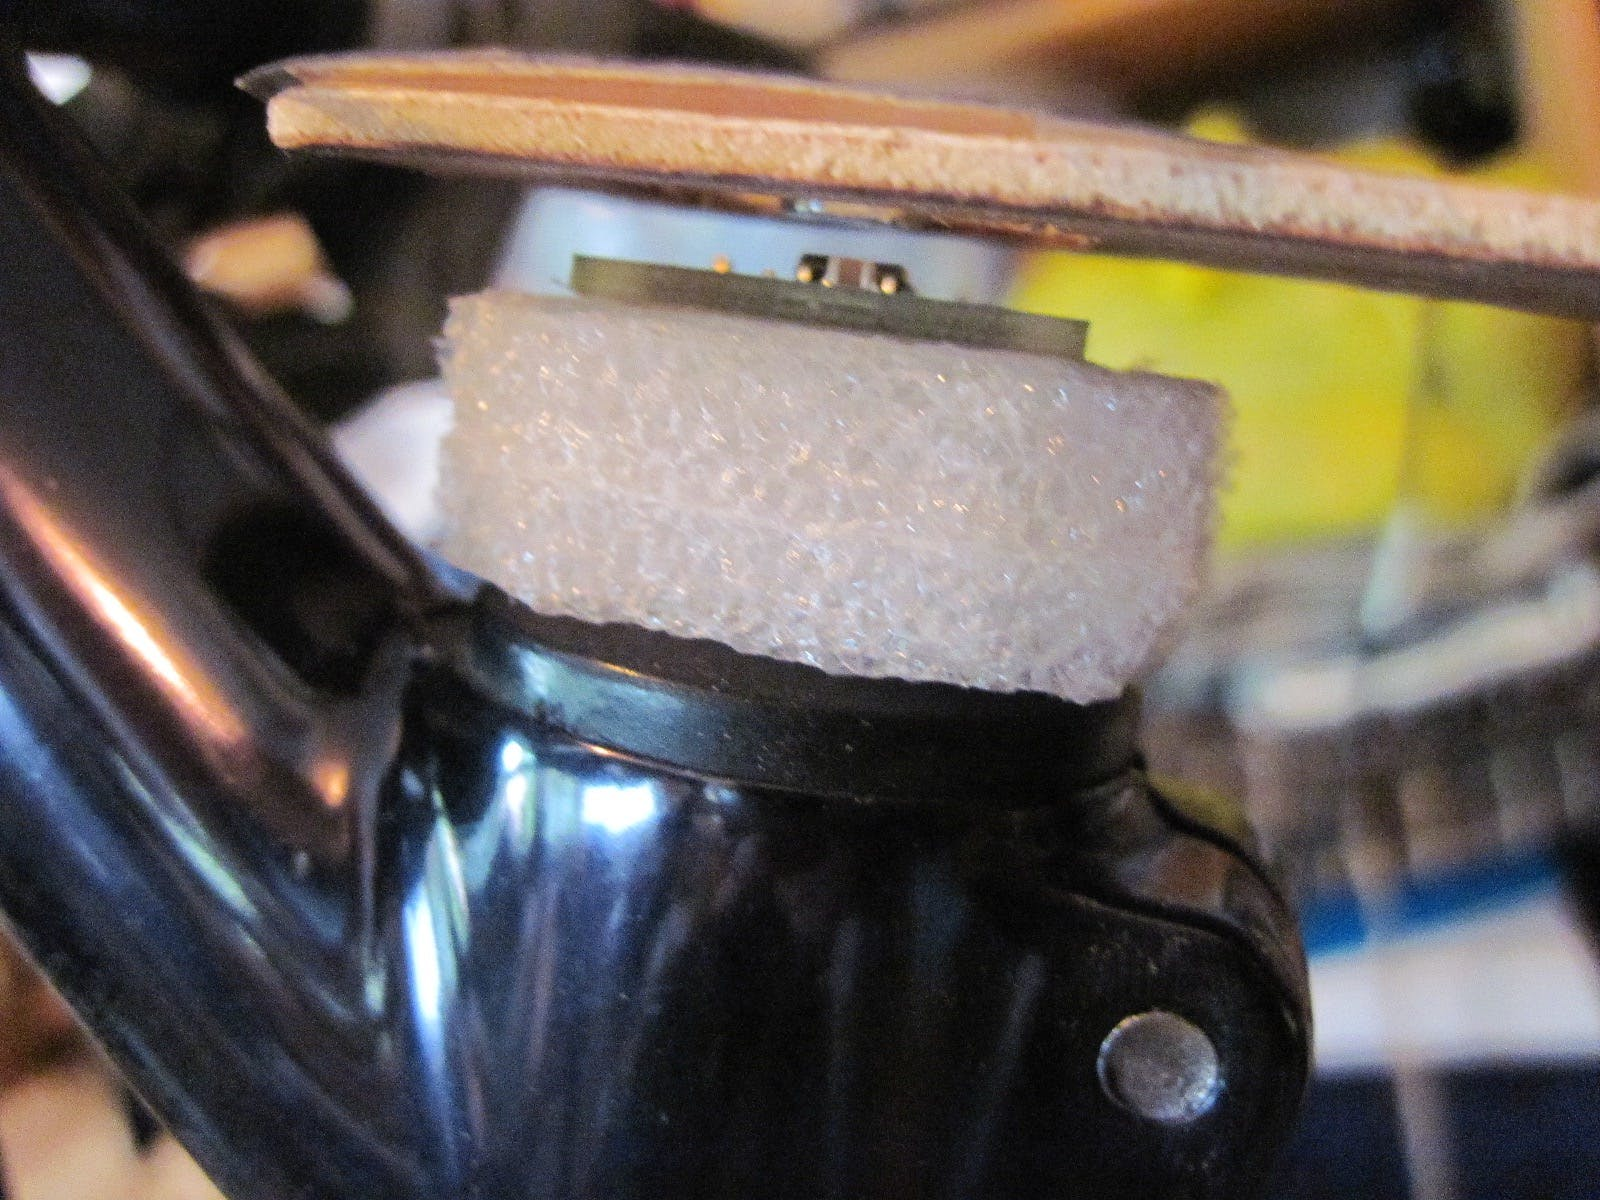 Side view of steering sensor assembly showing magnet flying just above Hall sensor